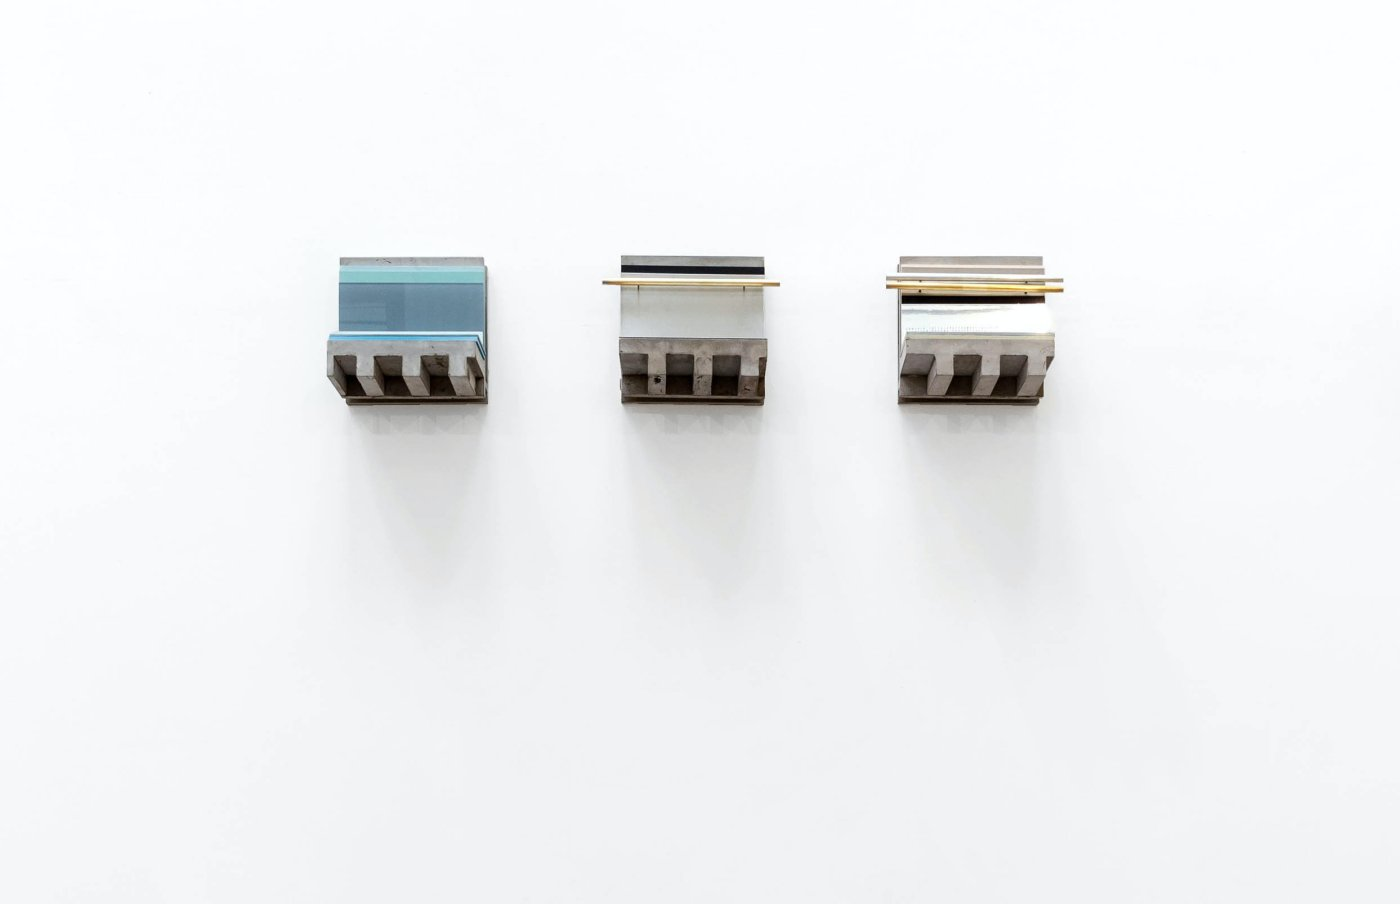 Lateral cuts series (3 pieces). Models of internal architectural cross-sections